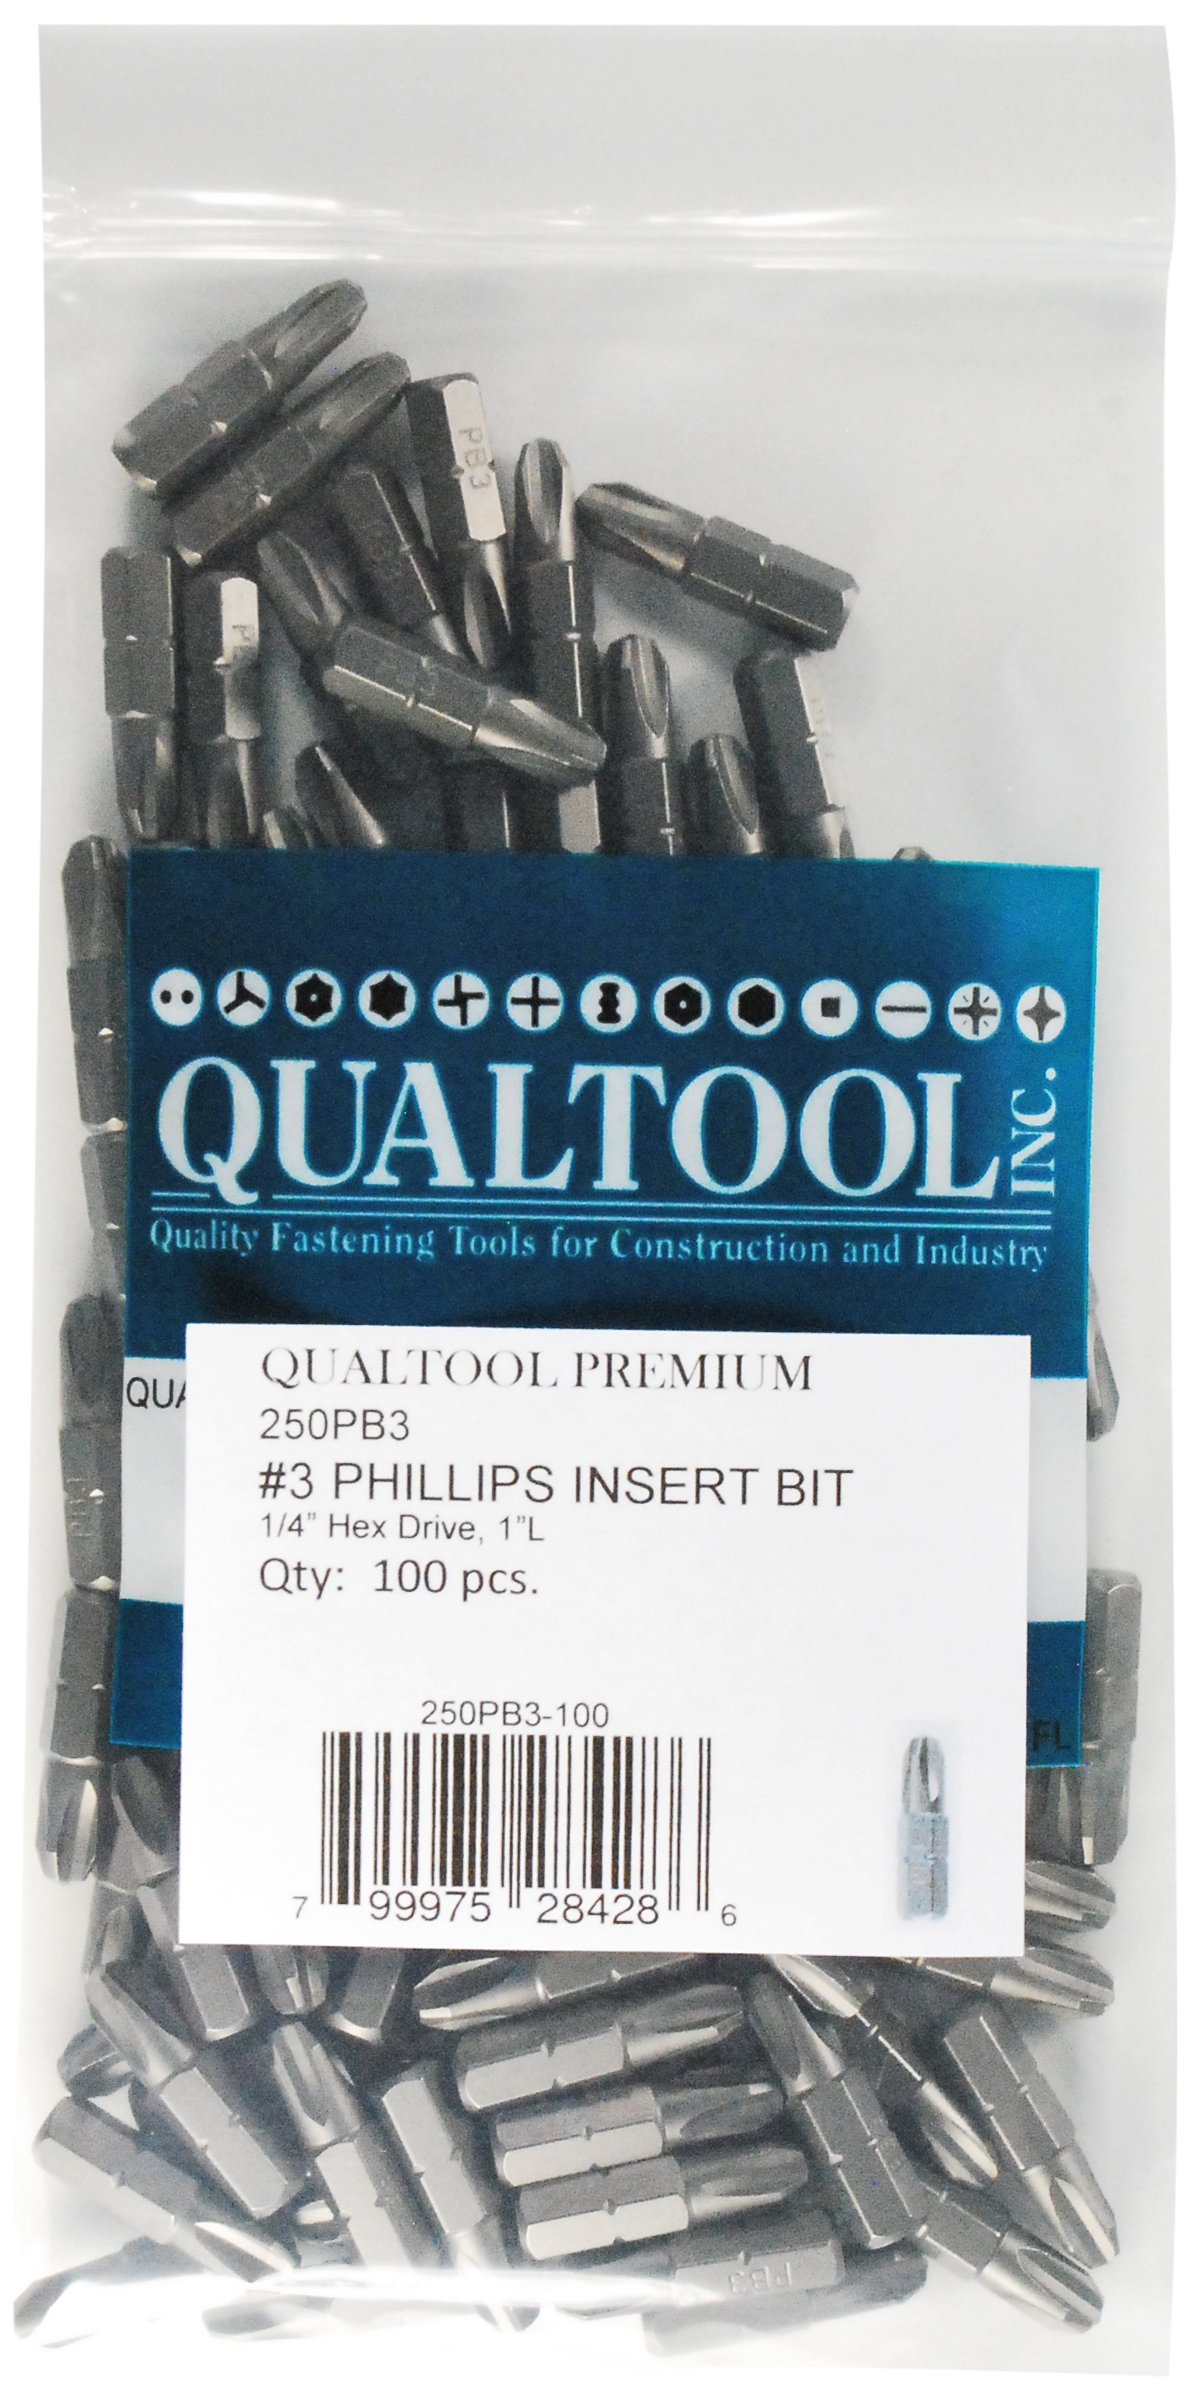 Qualtool Premium 250PB3-100 1/4-Inch Hex Drive Size 3 Phillips Insert Bit, 100-Pack by QUALTOOL PREMIUM